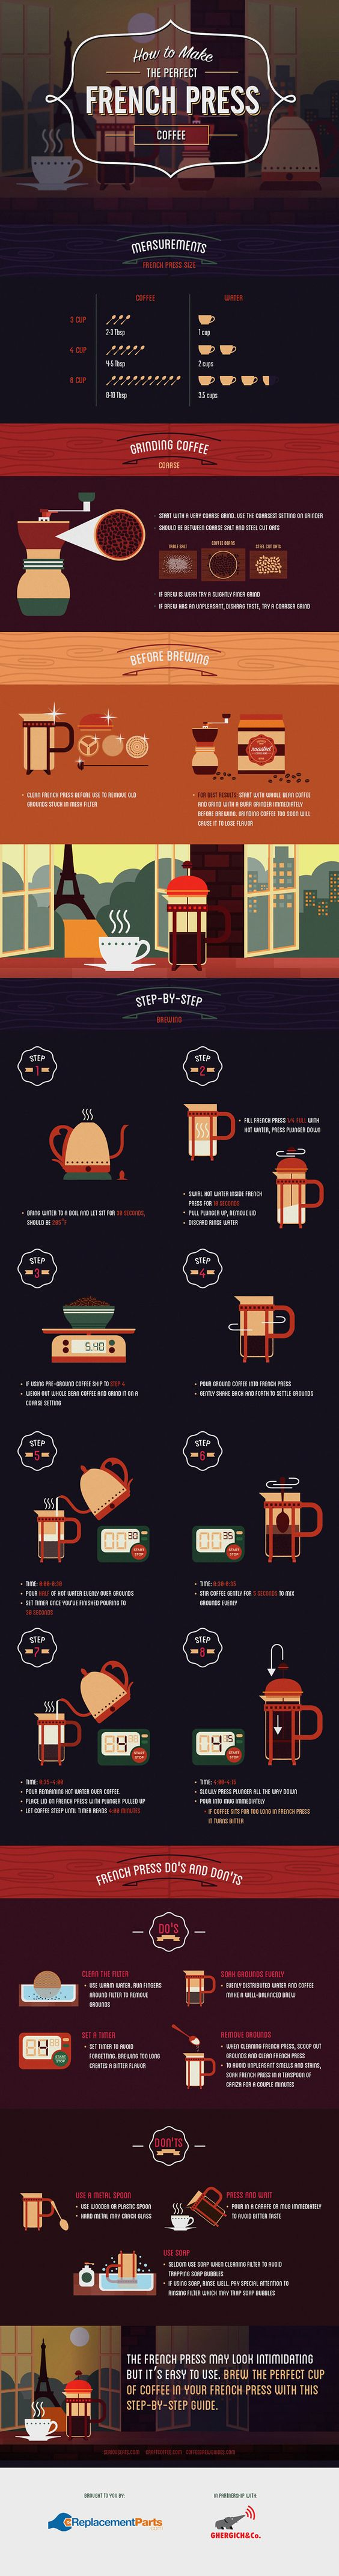 How to Make a French Press Coffee